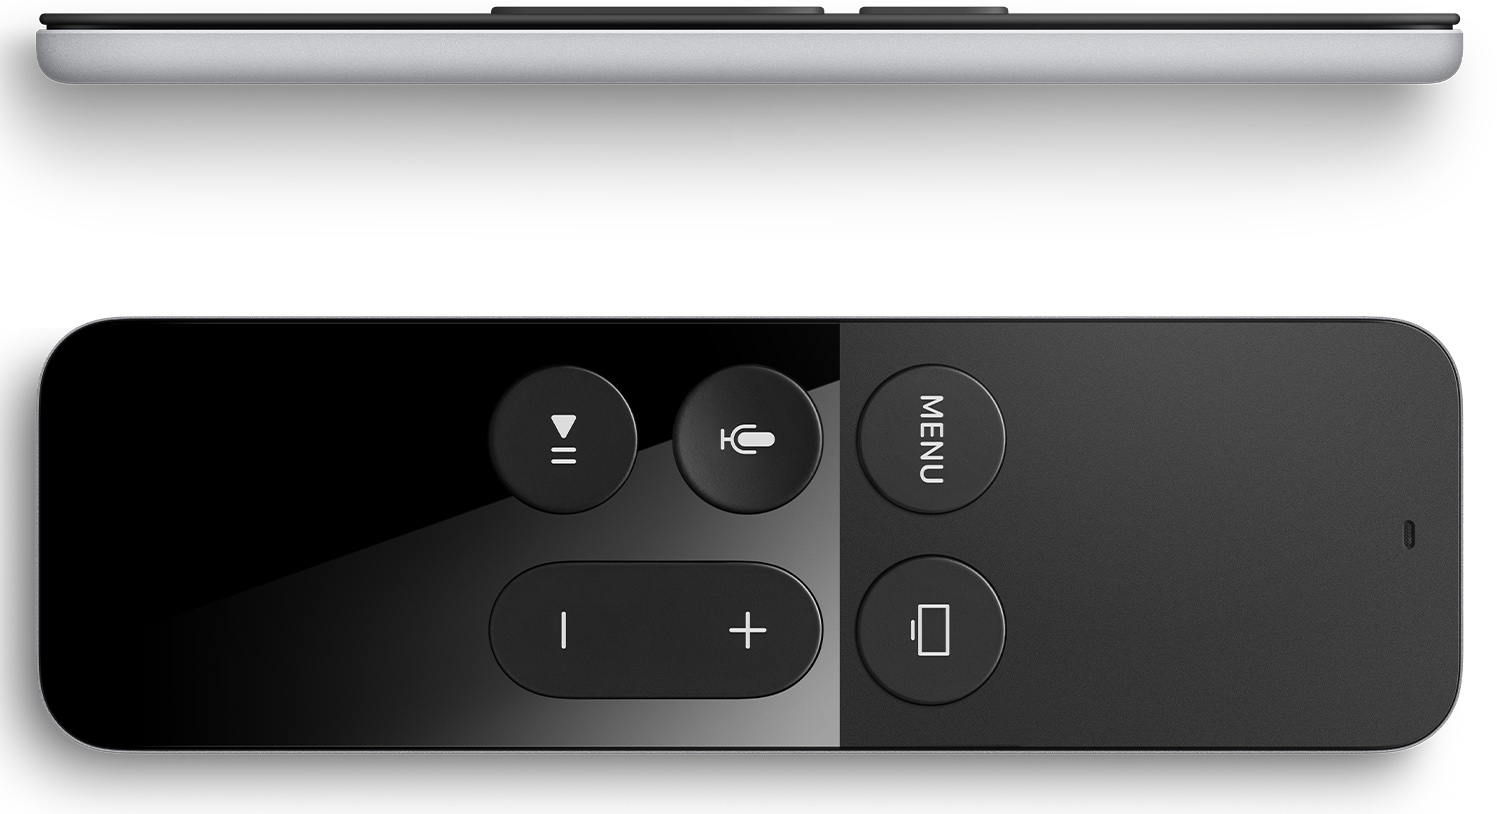 Apple TV 4 top view remote image 003